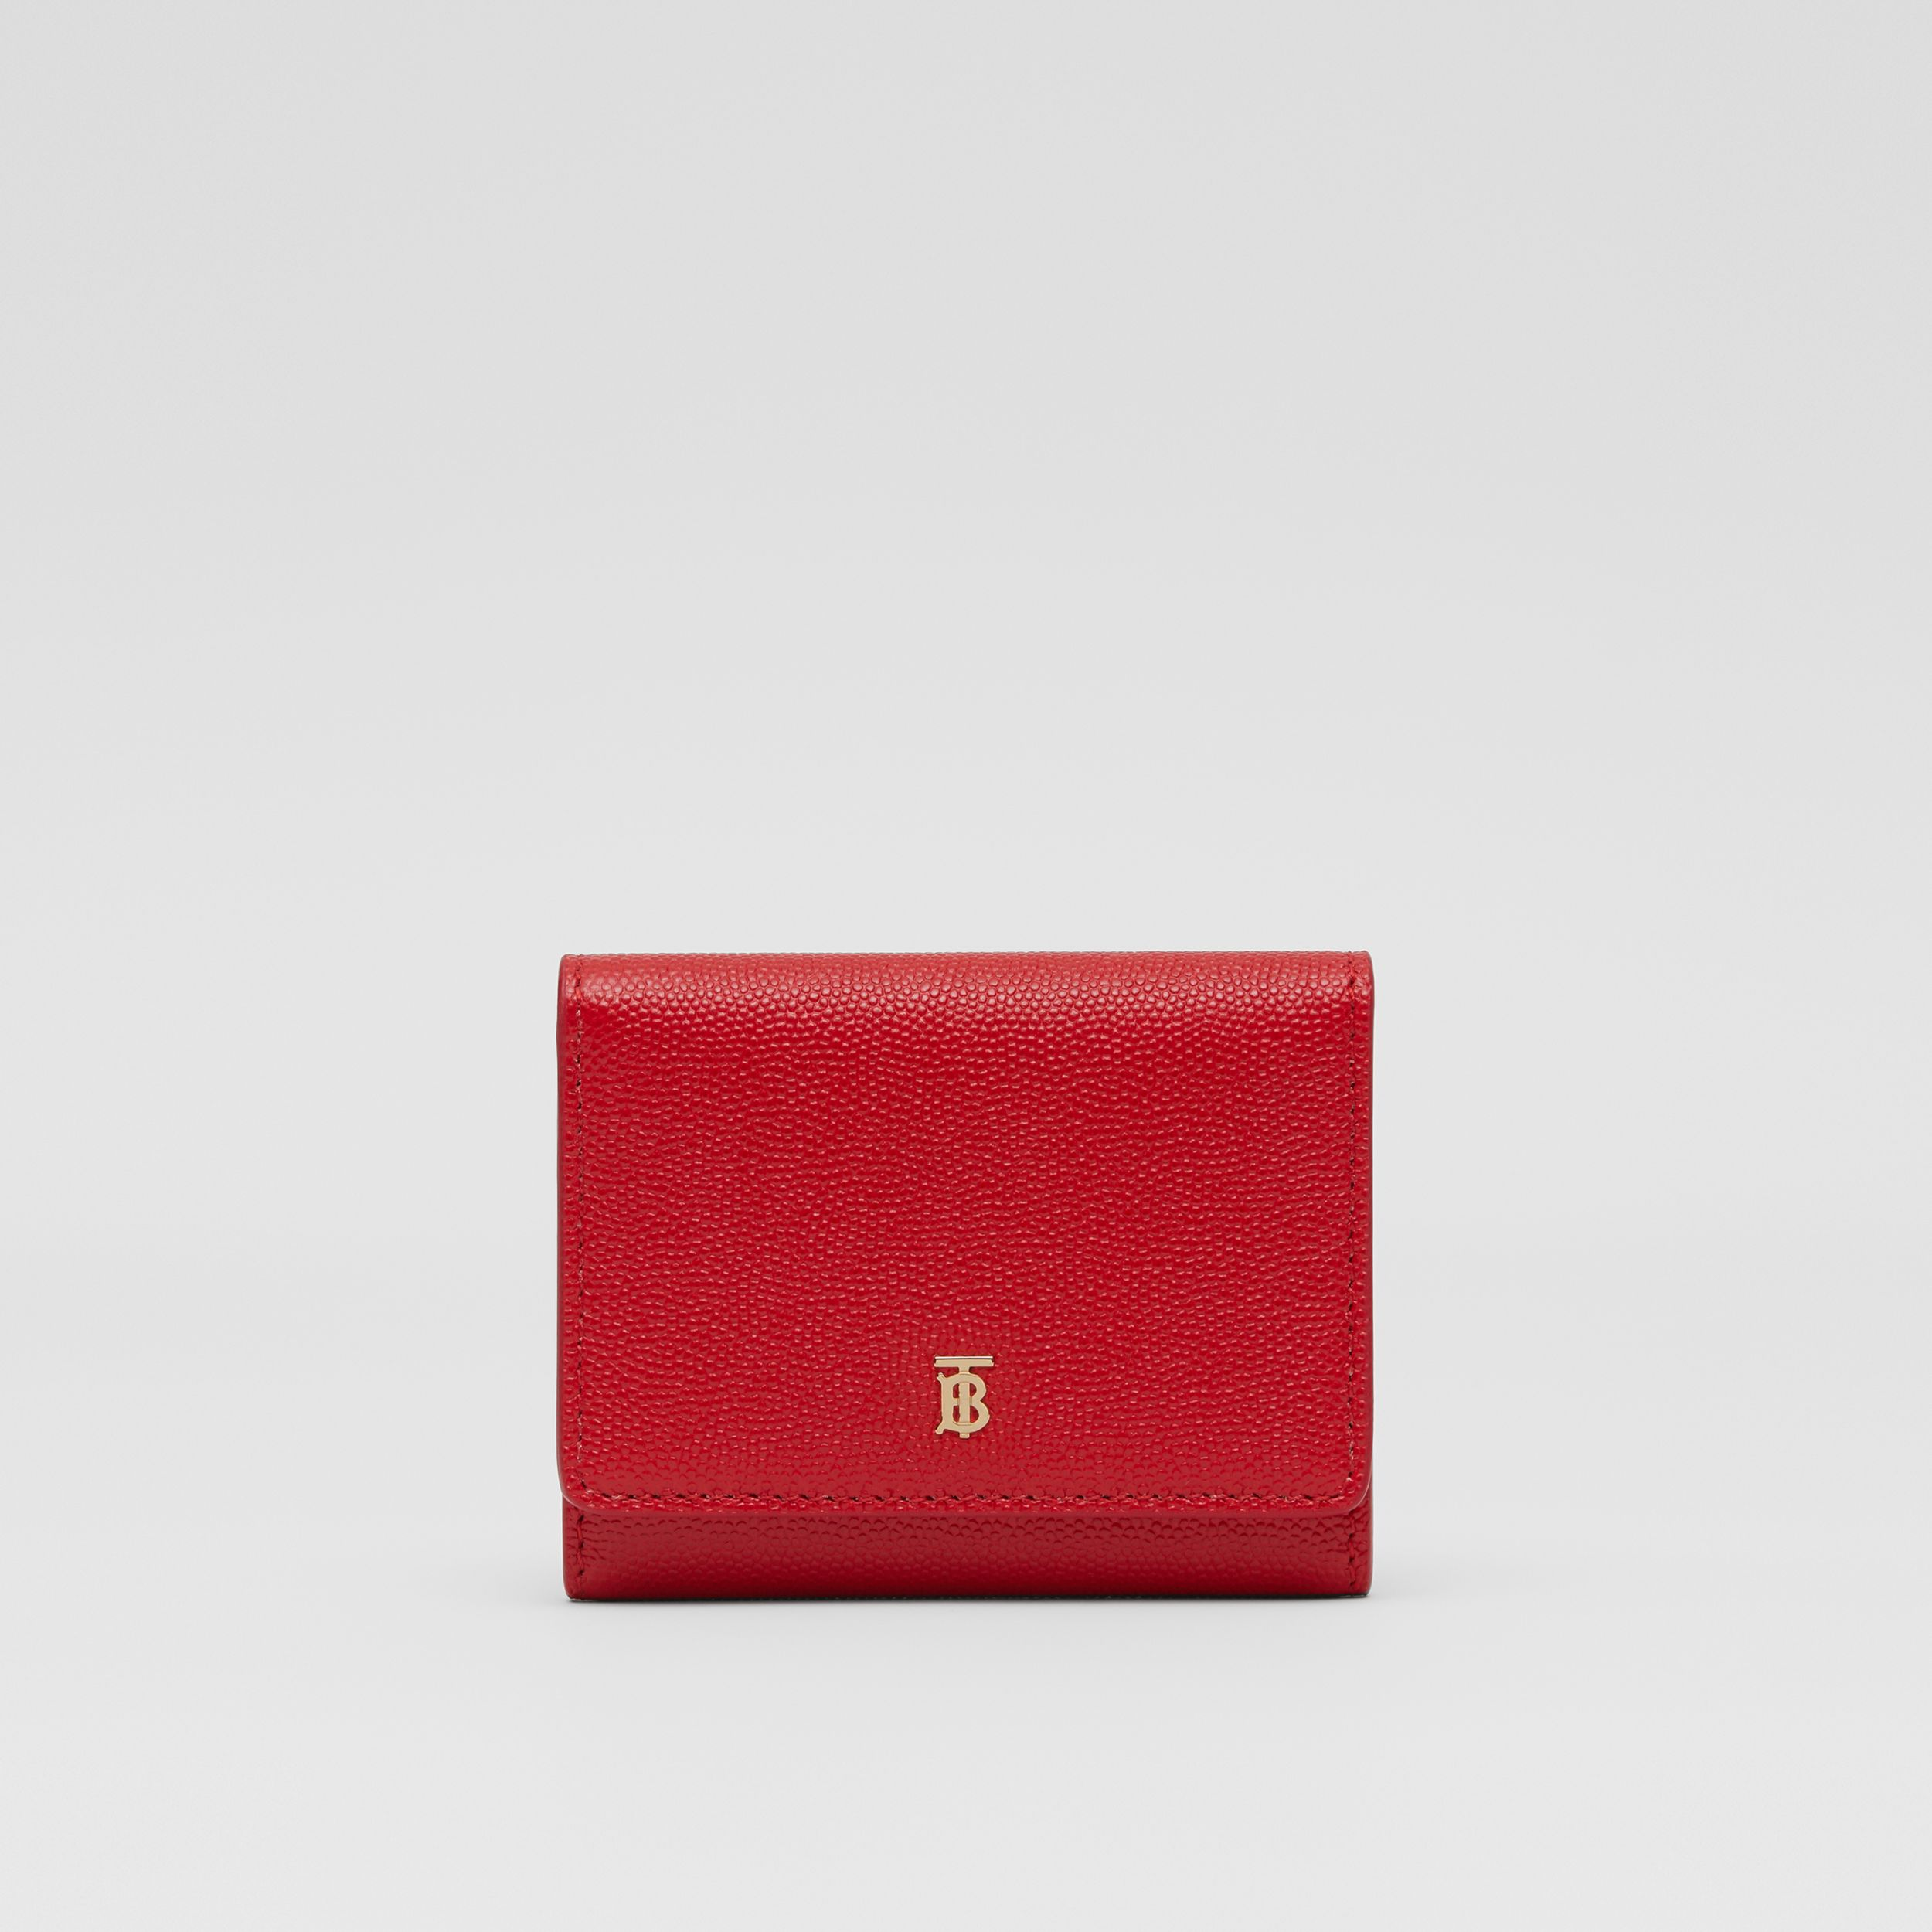 Grainy Leather ID Card Case in Bright Red - Women | Burberry - 1